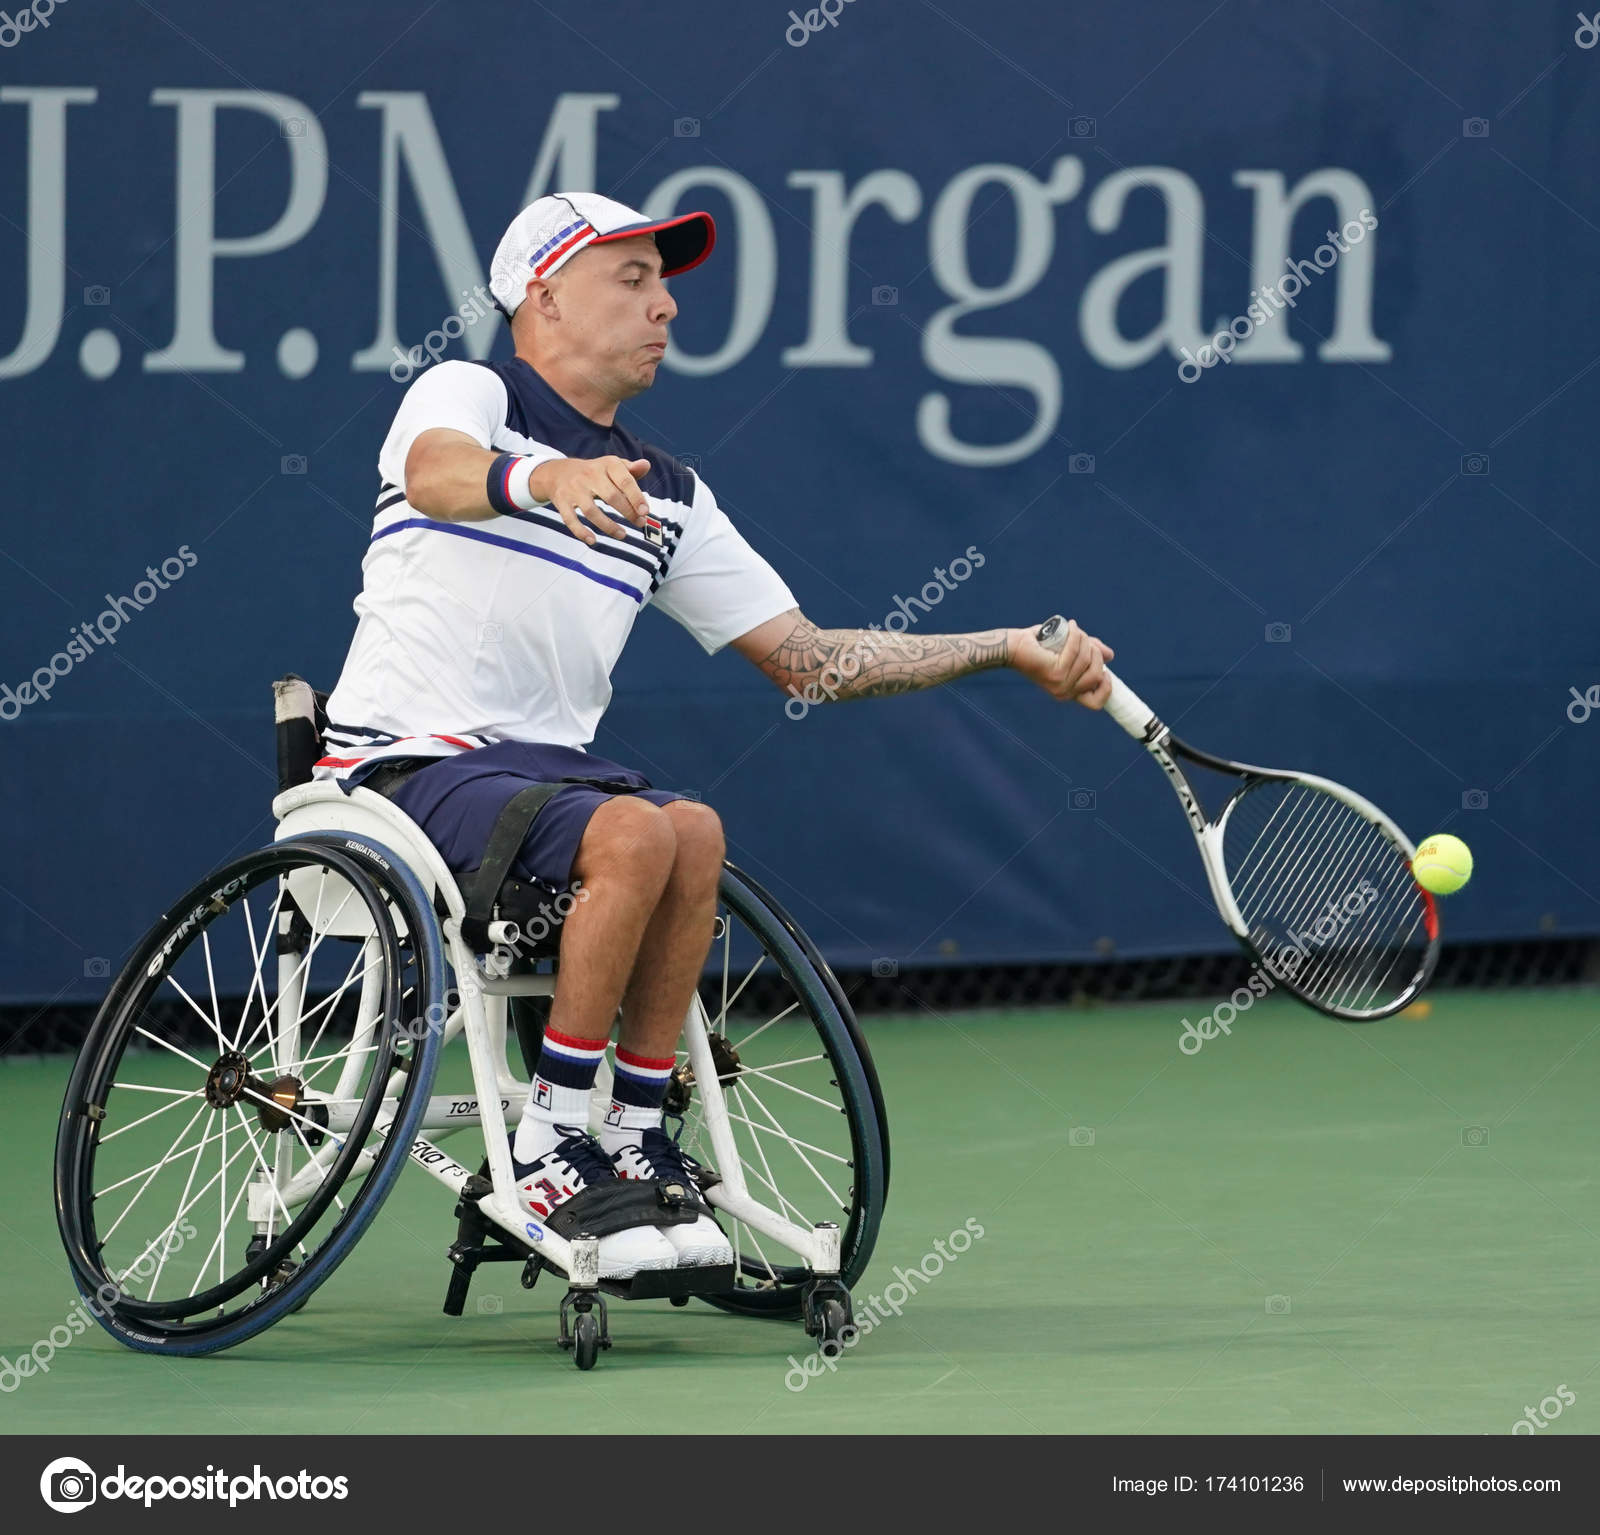 wheelchair quad wooden baby high chair canada tennis player andrew lapthorne of great britain in action during his singles semifinal